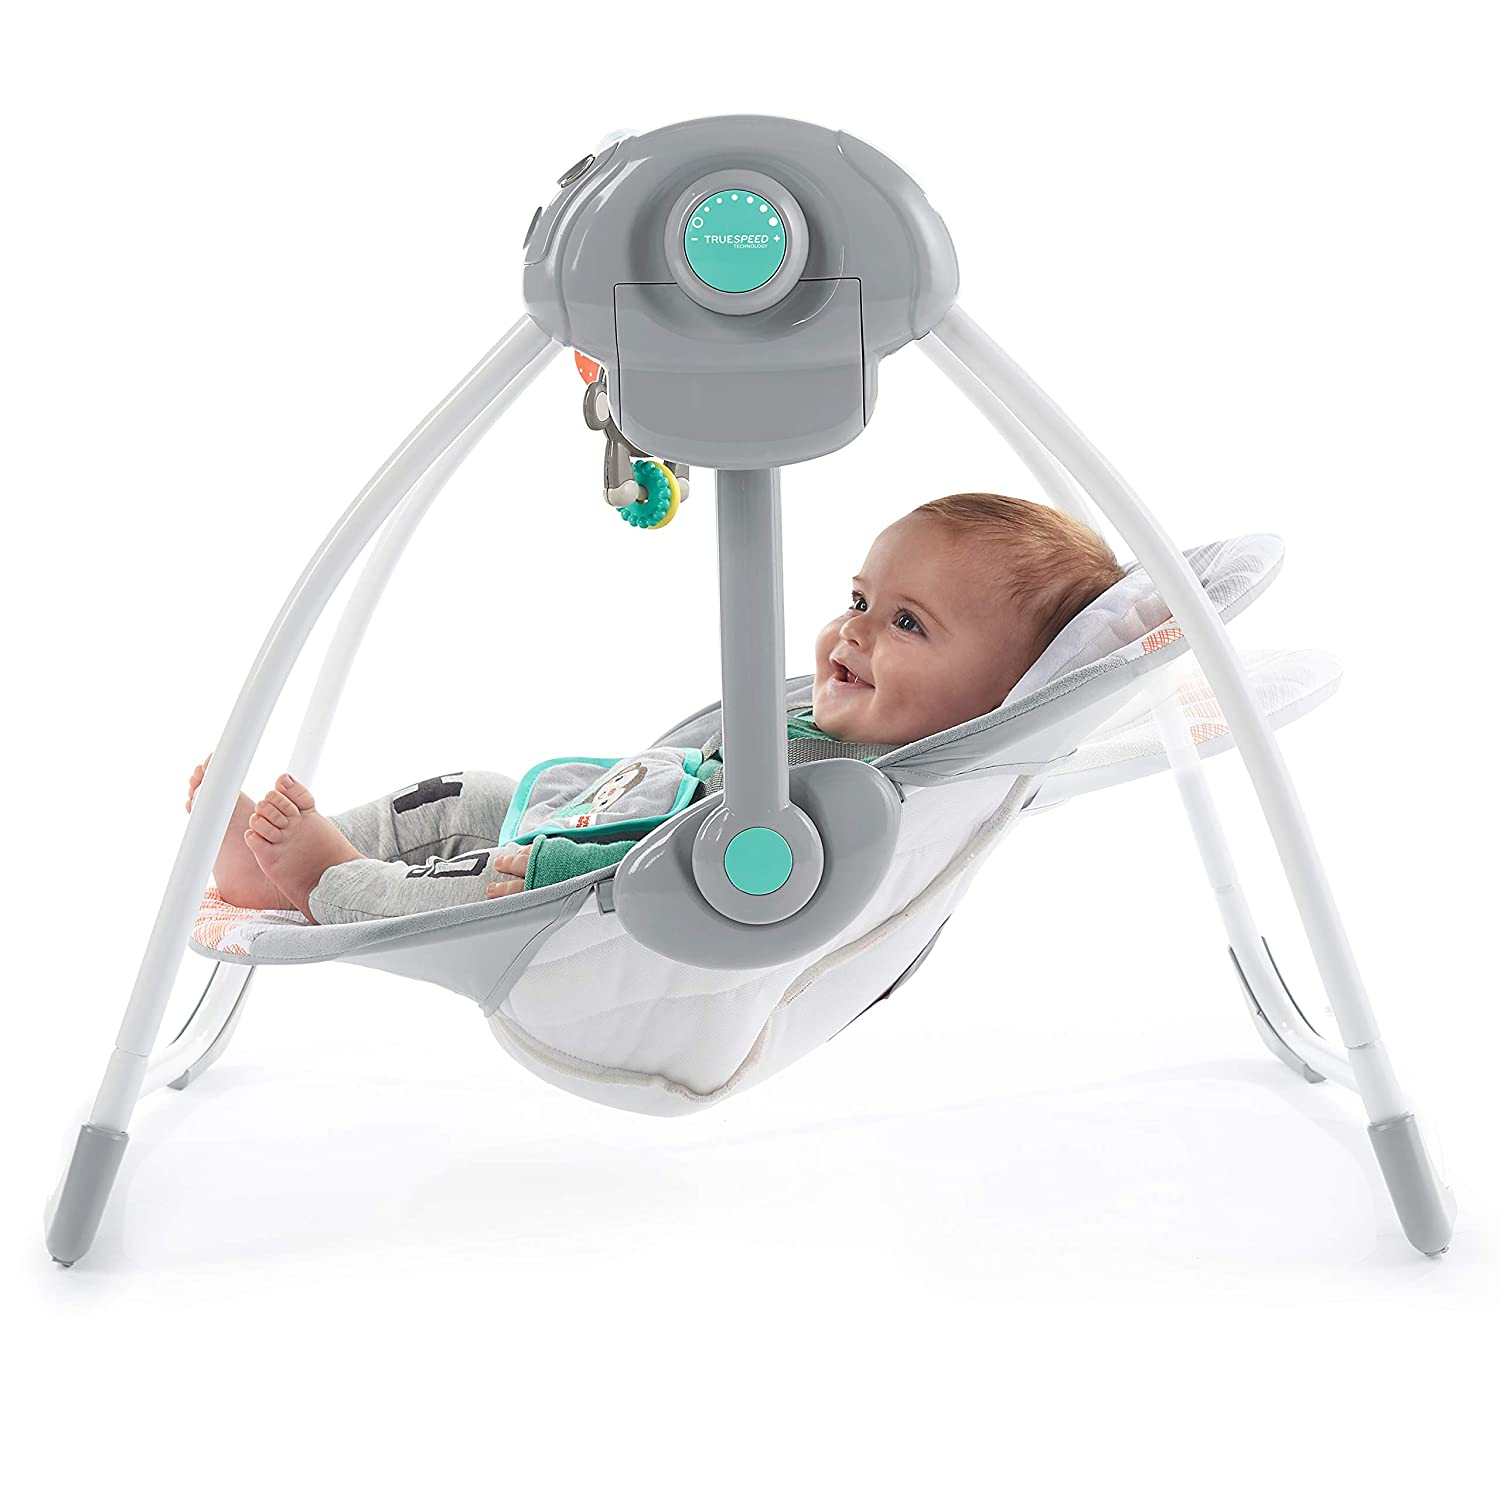 71K8CXYeMfL. SL1500 9 of the Best Baby Swing for Small Spaces (Apartments) 2021